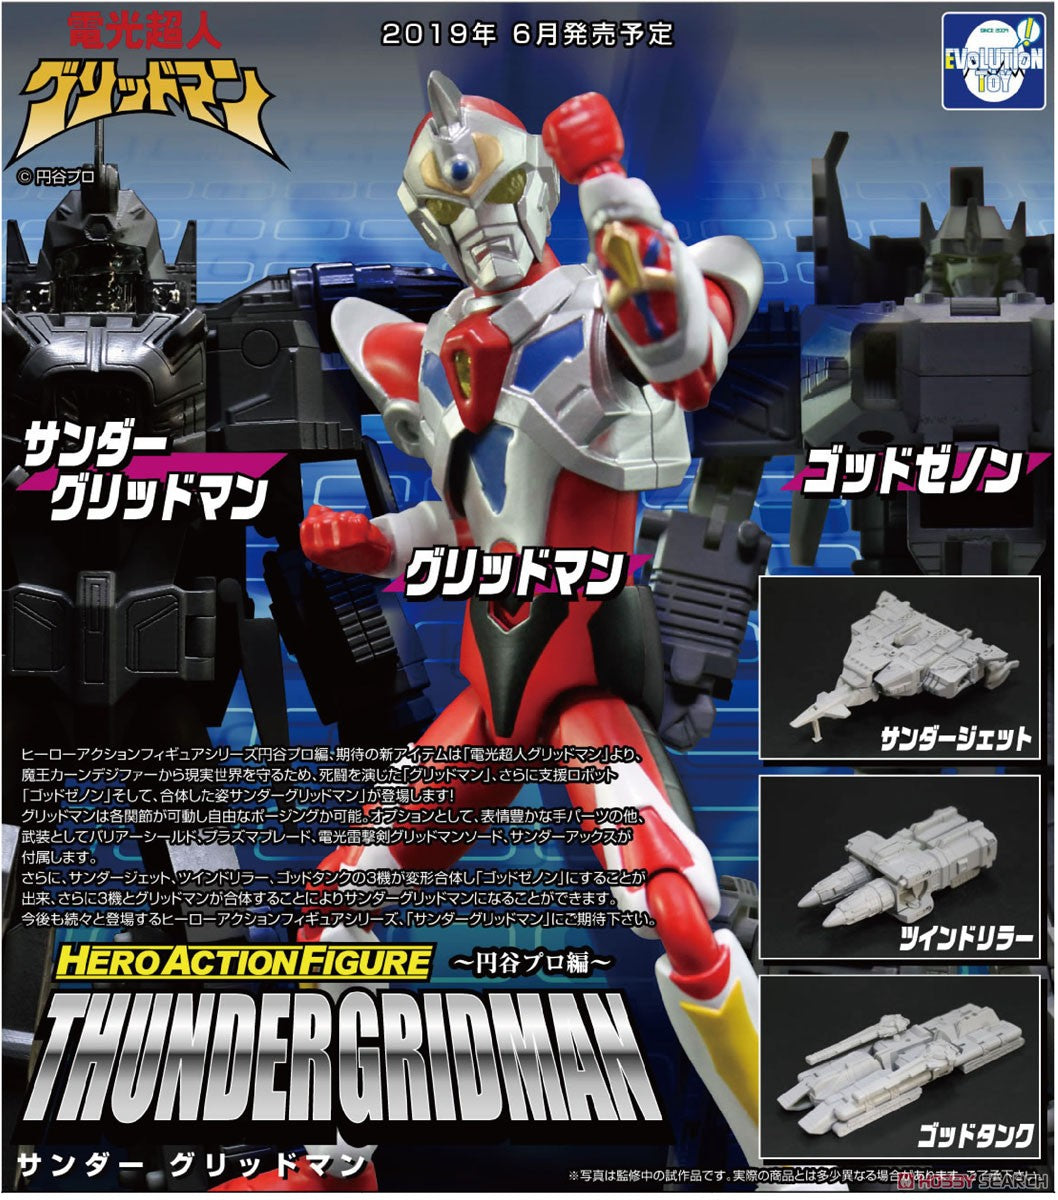 【已截訂】Evolution Toy Denkou Choujin Gridman HAF Thunder Gridman Action Figure